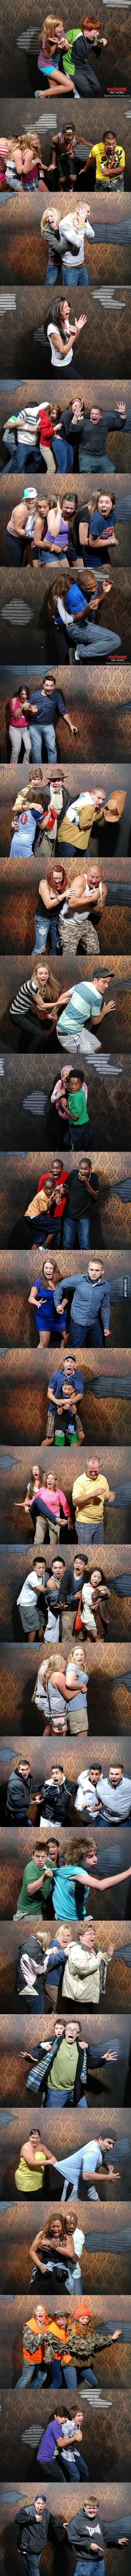 A Haunted House Snaps Photos of people At The Scariest Moment Of The Tour. those faces hahahaa